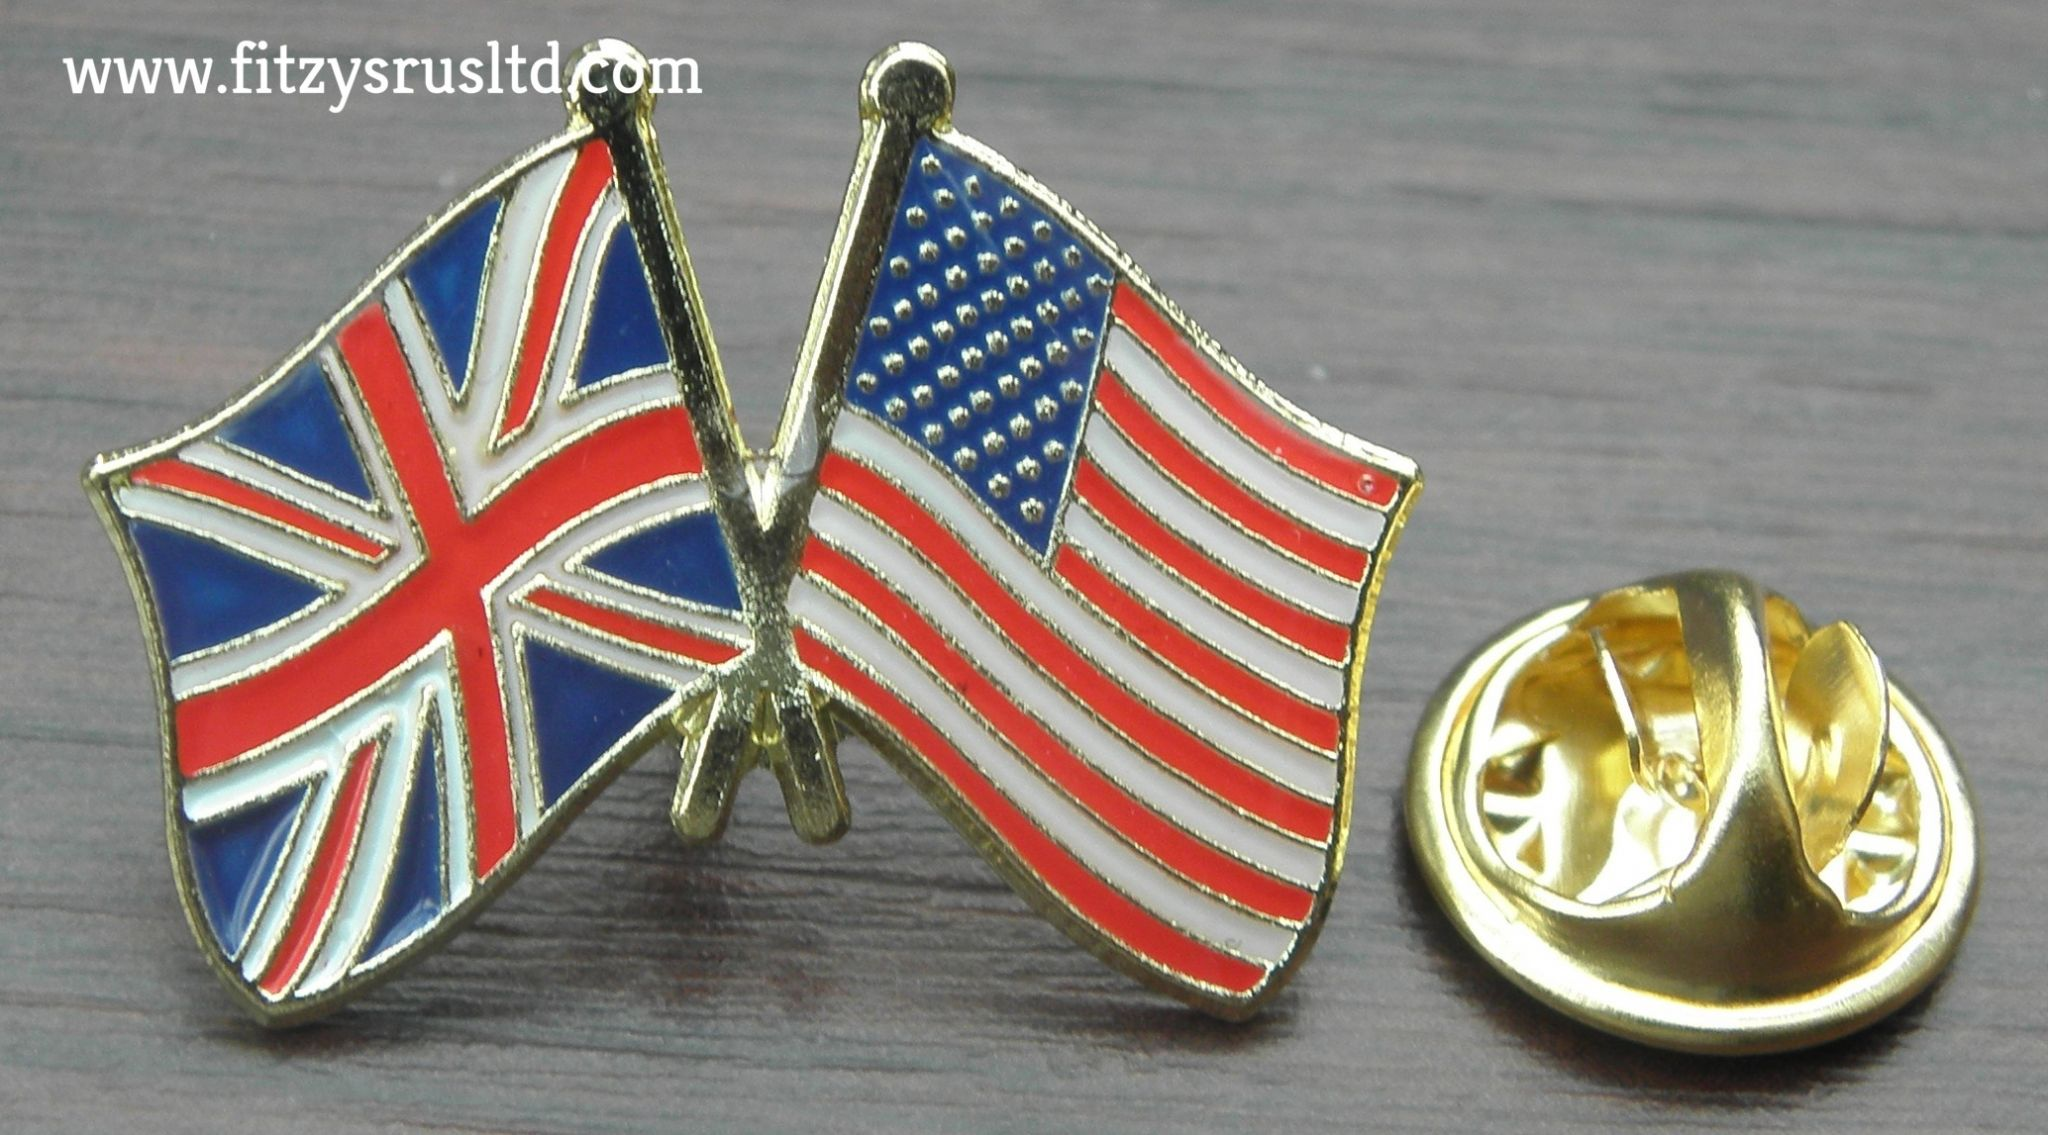 c9198026 America USA UK Union Jack Friendship Lapel Hat Tie Cap Pin Badge ...